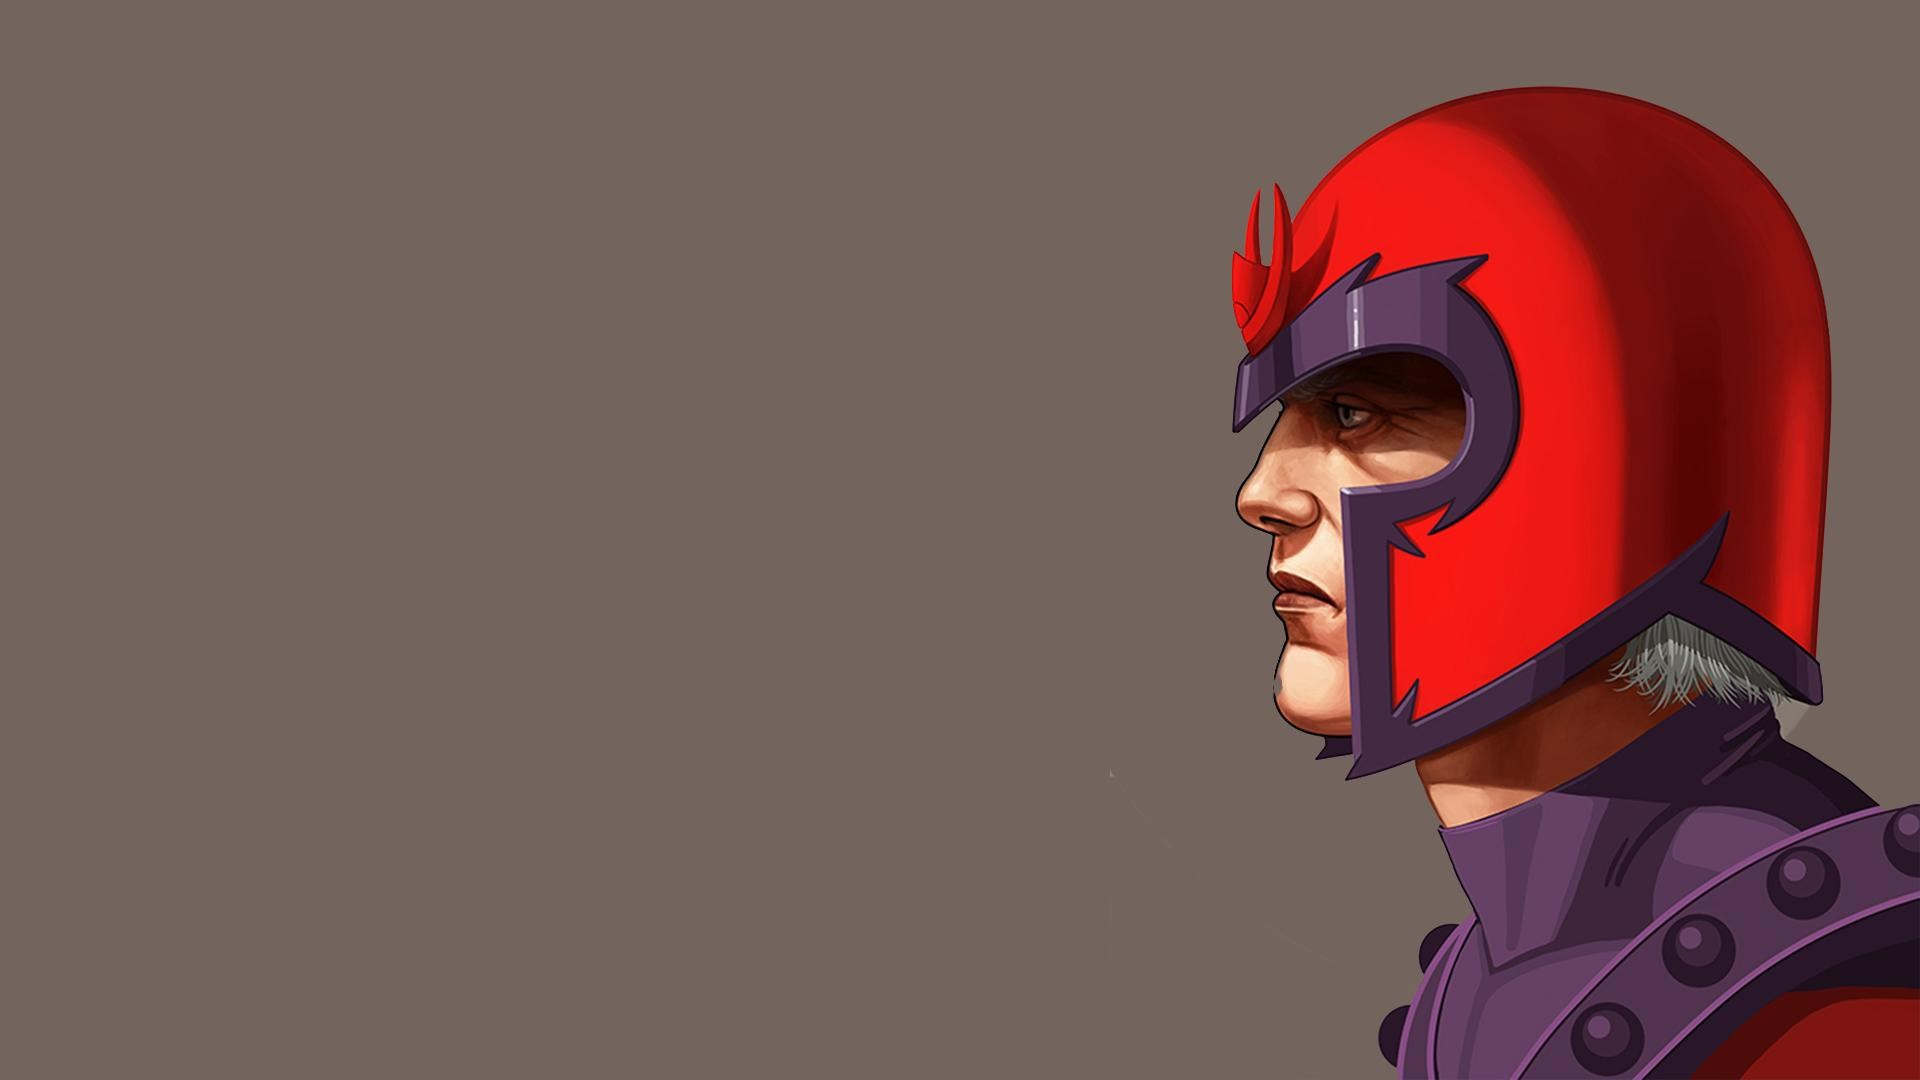 1920x1080 - Magneto Wallpapers 19